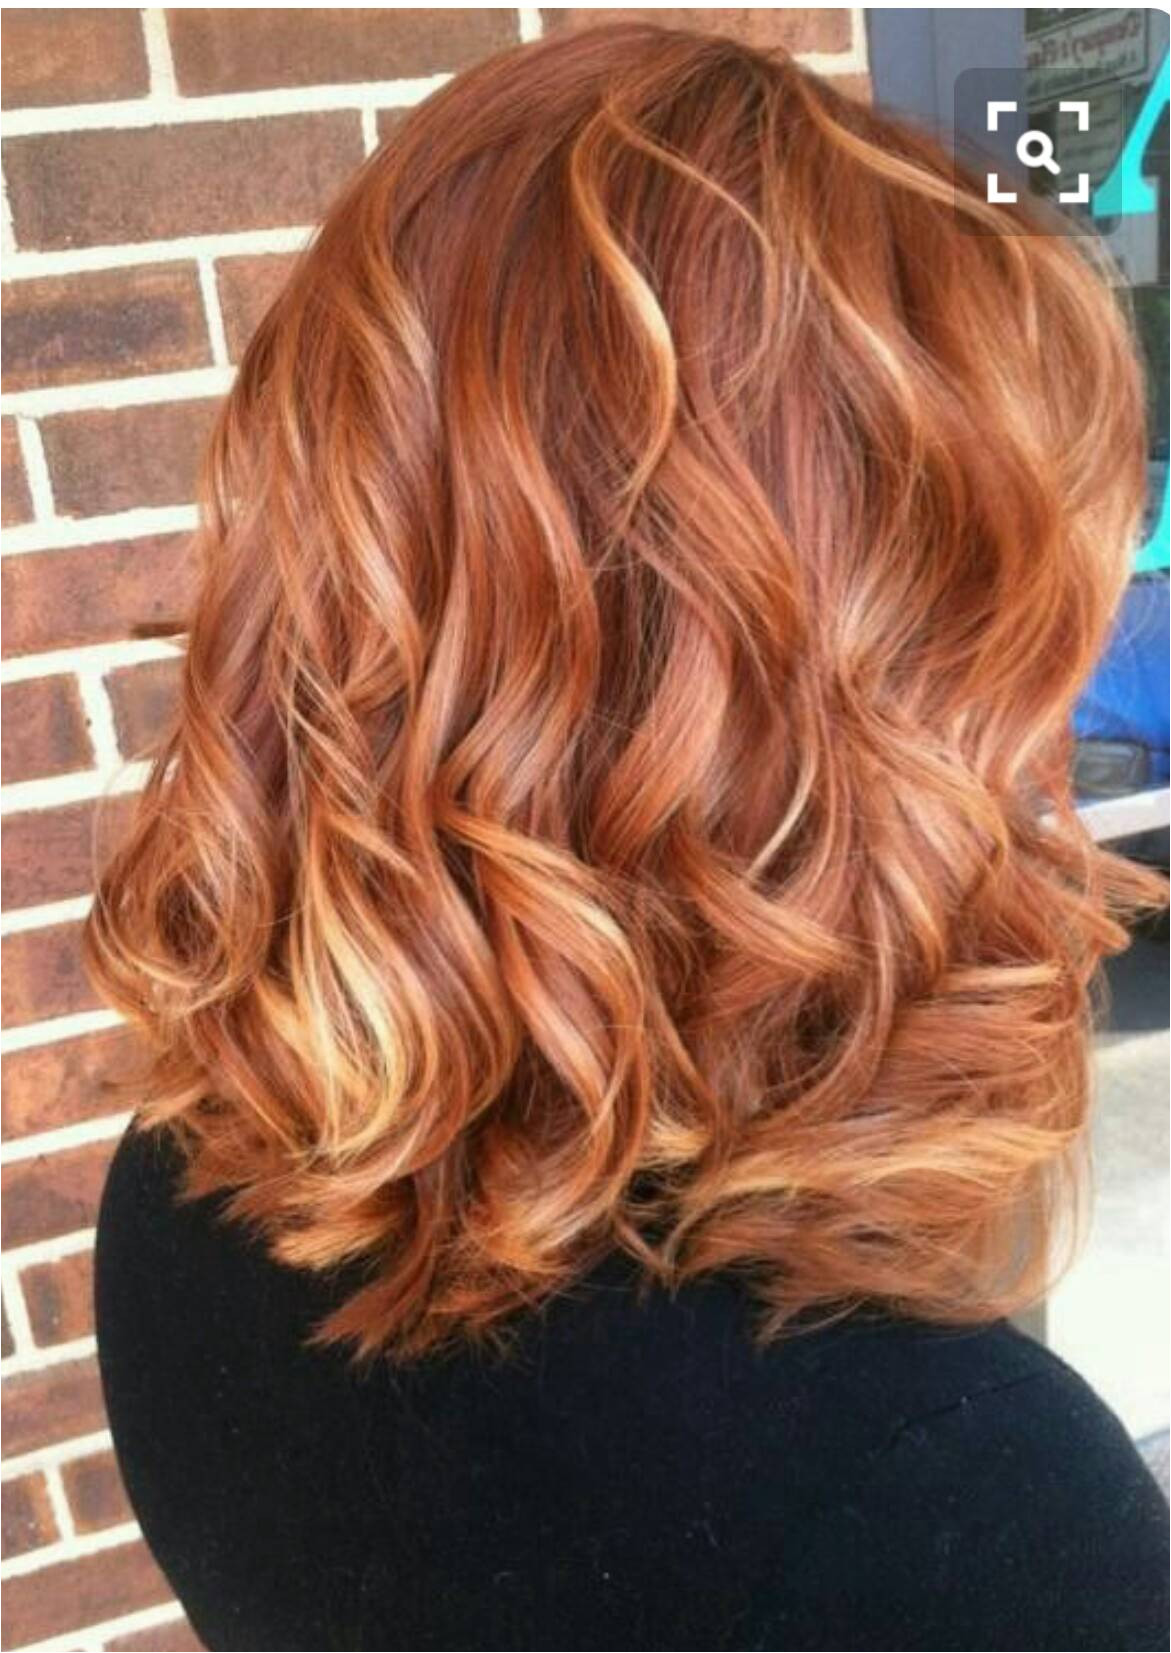 Cute Down Hairstyles for Long Hair Cool Bronde Hair Colour About Hair Dye Styles Beautiful I